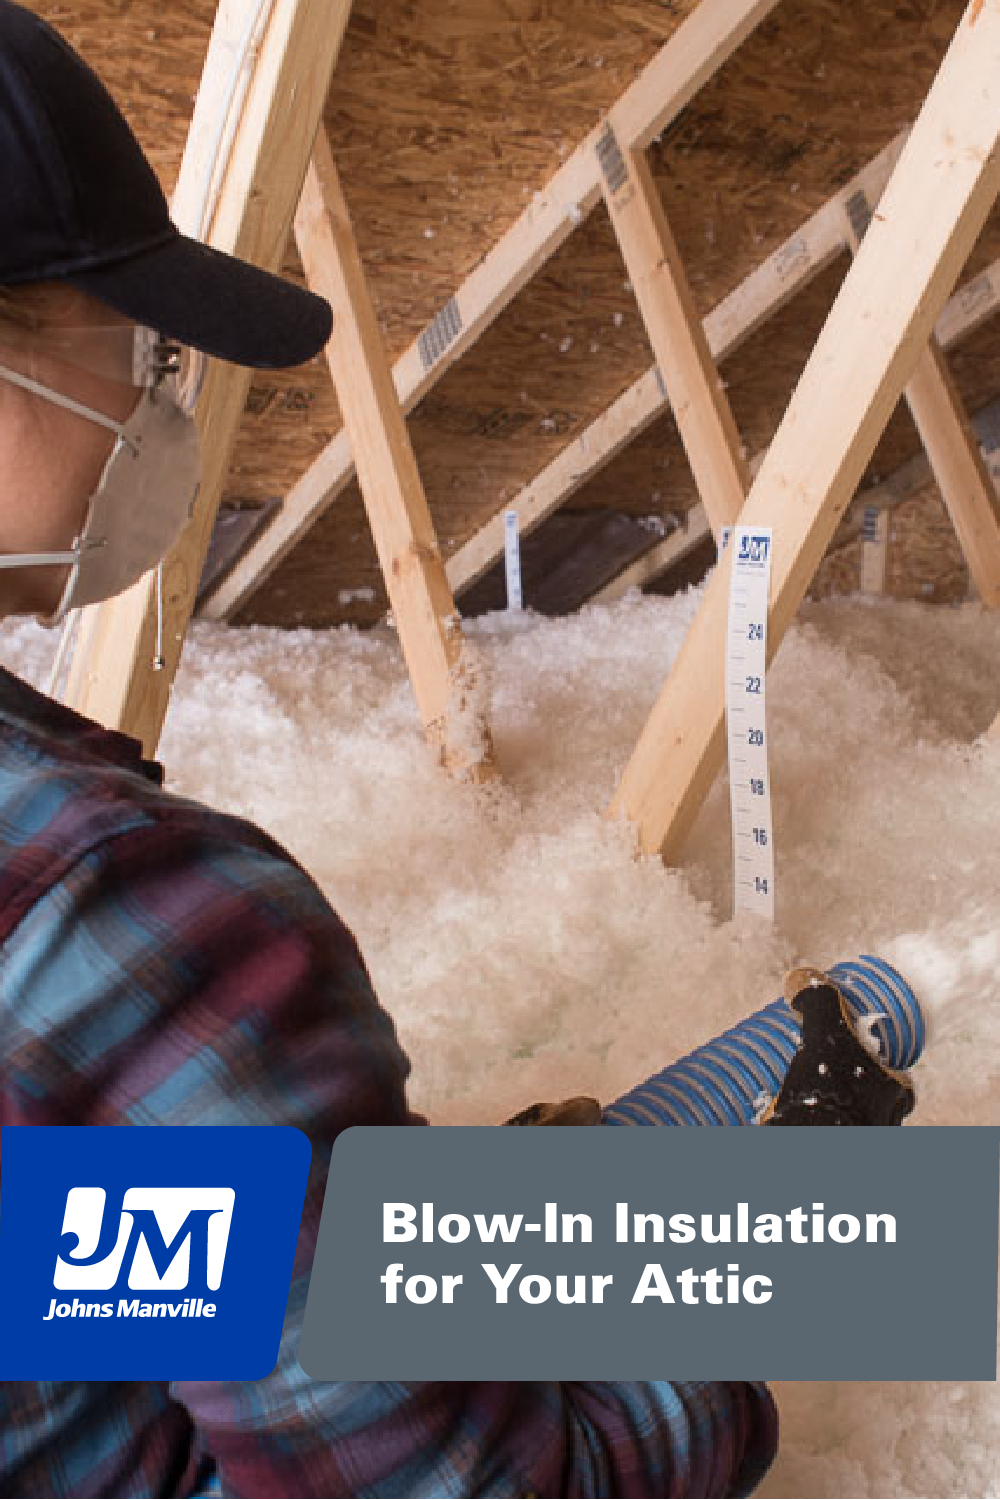 Are You Working With Hard To Insulate Areas Jm Blow In Insulation Provides Complete Coverage To Fill Gaps And Blown In Insulation Attic Insulation Insulation